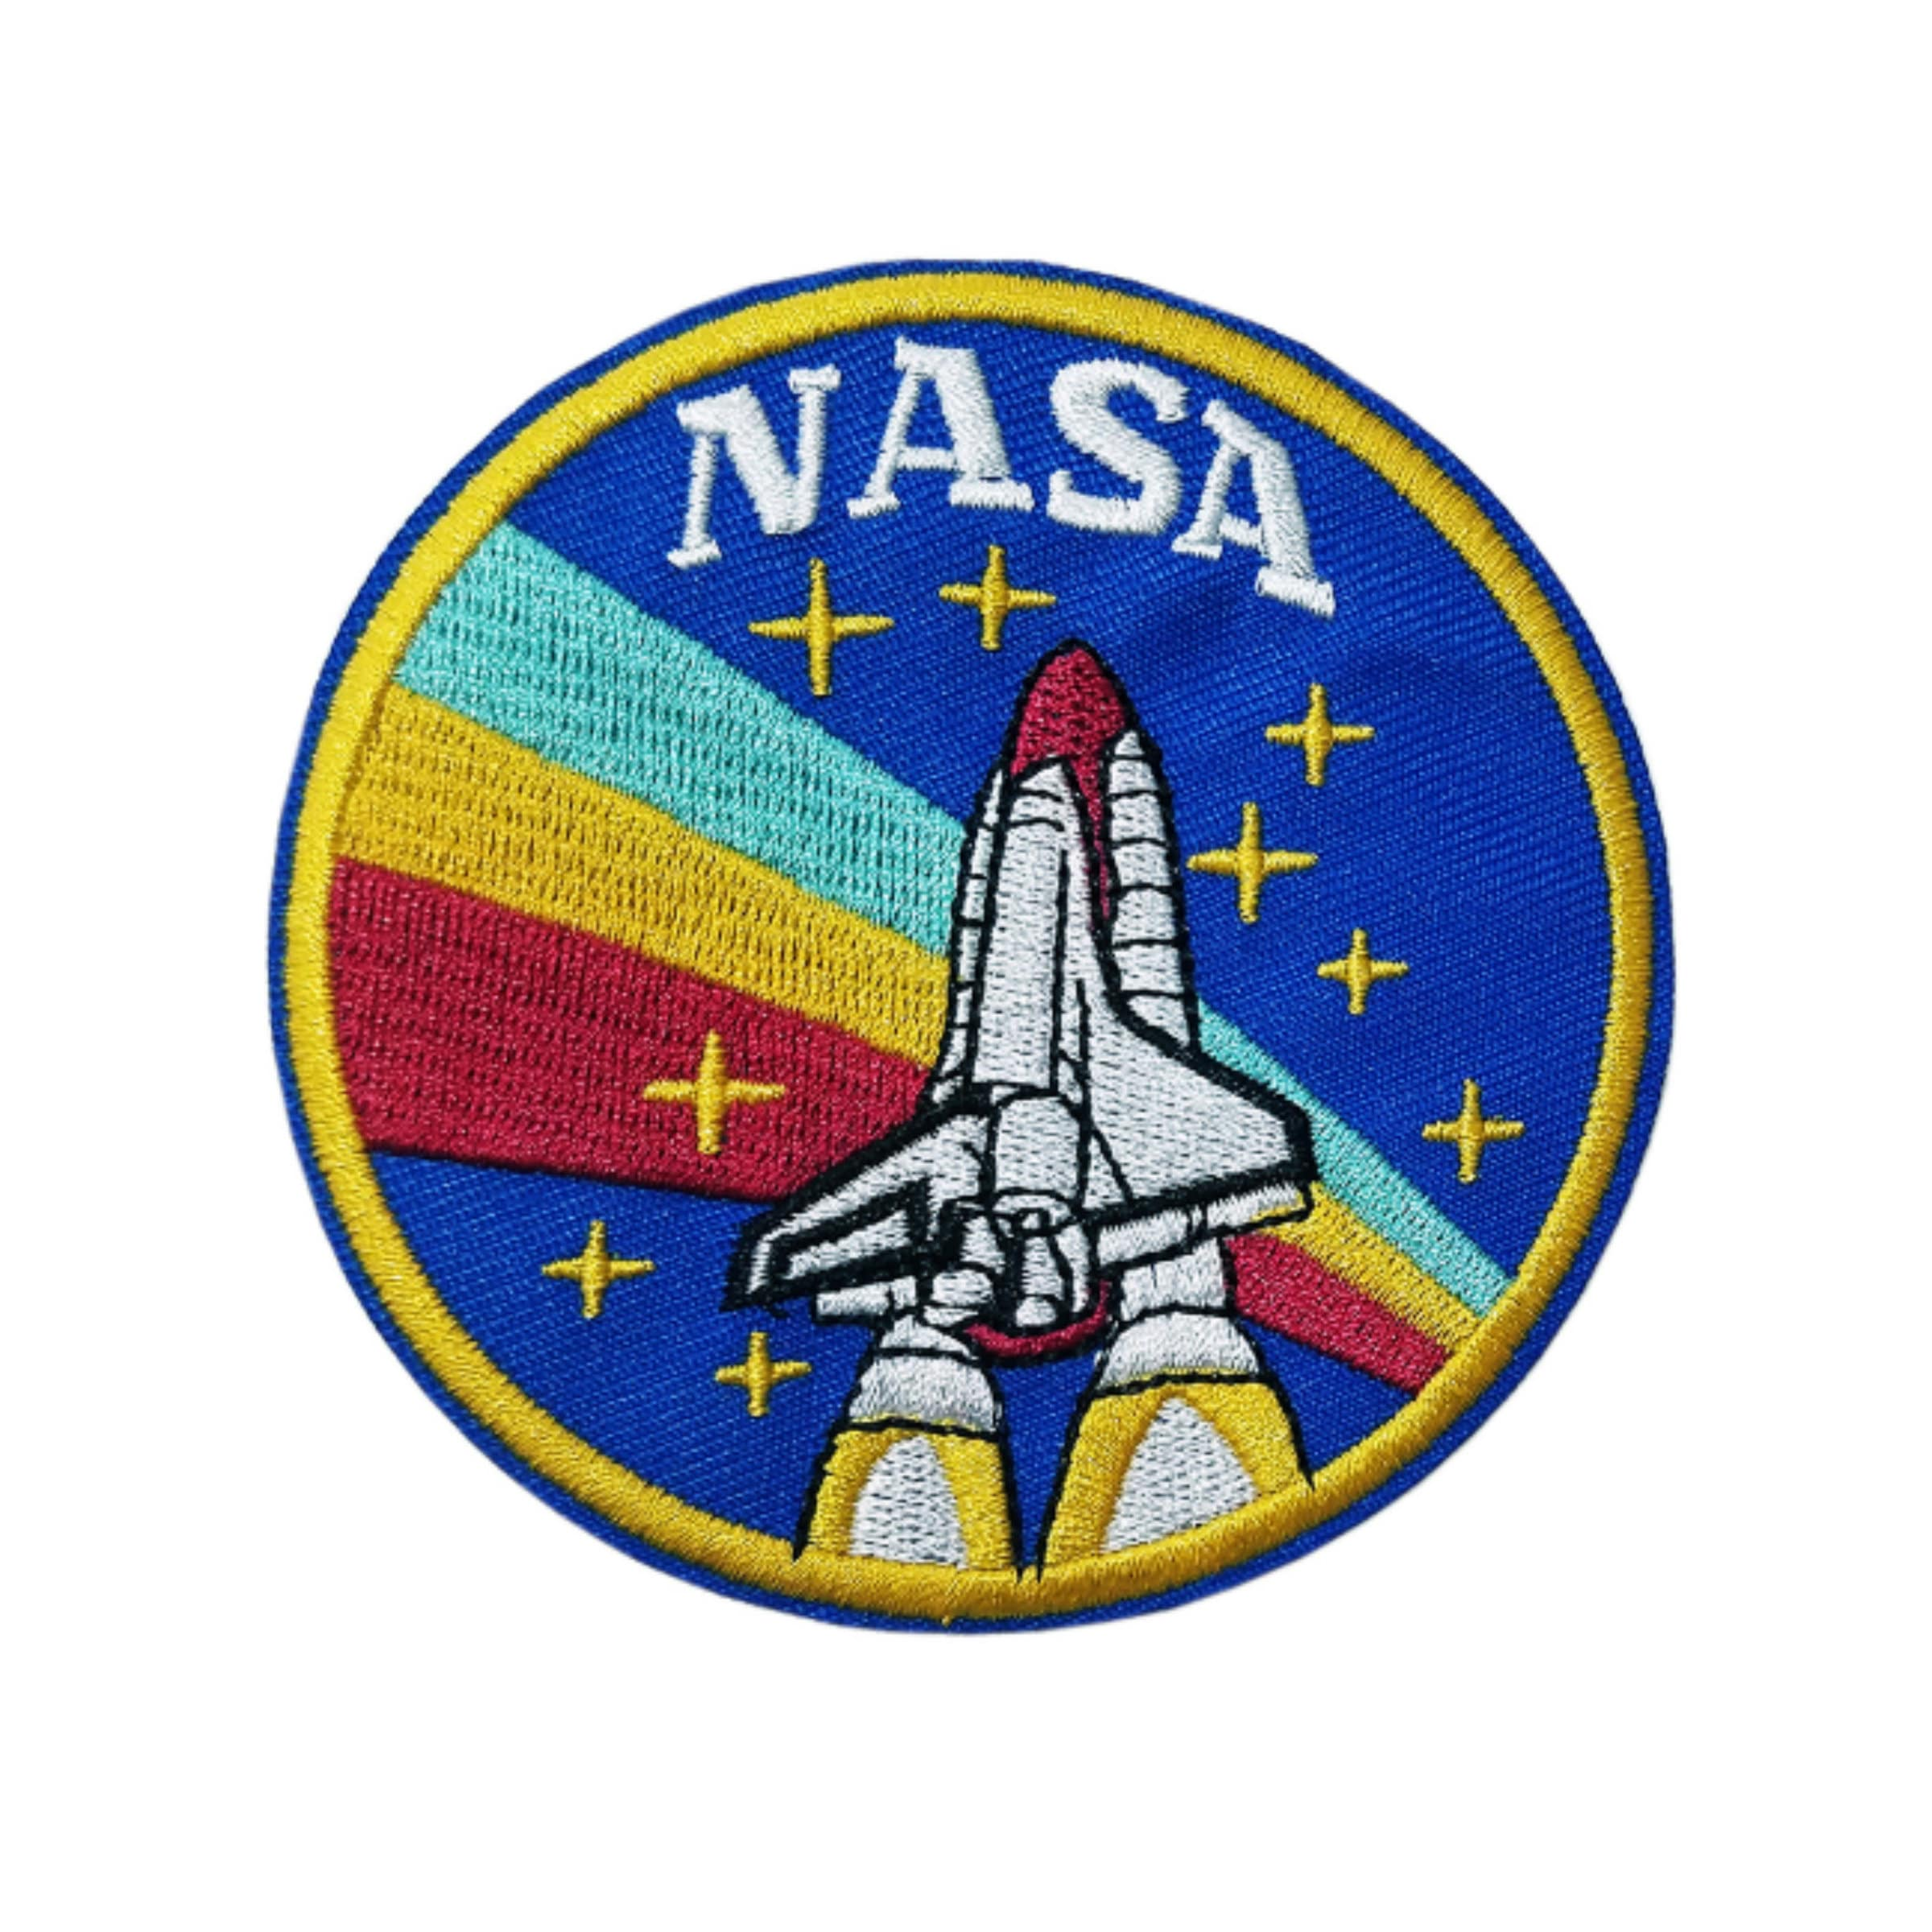 UFO patch,Alien patch,Canyon patch,iron on patch,embroidered patch,applique Sew on patch,for jacket,for mask,for backpack,